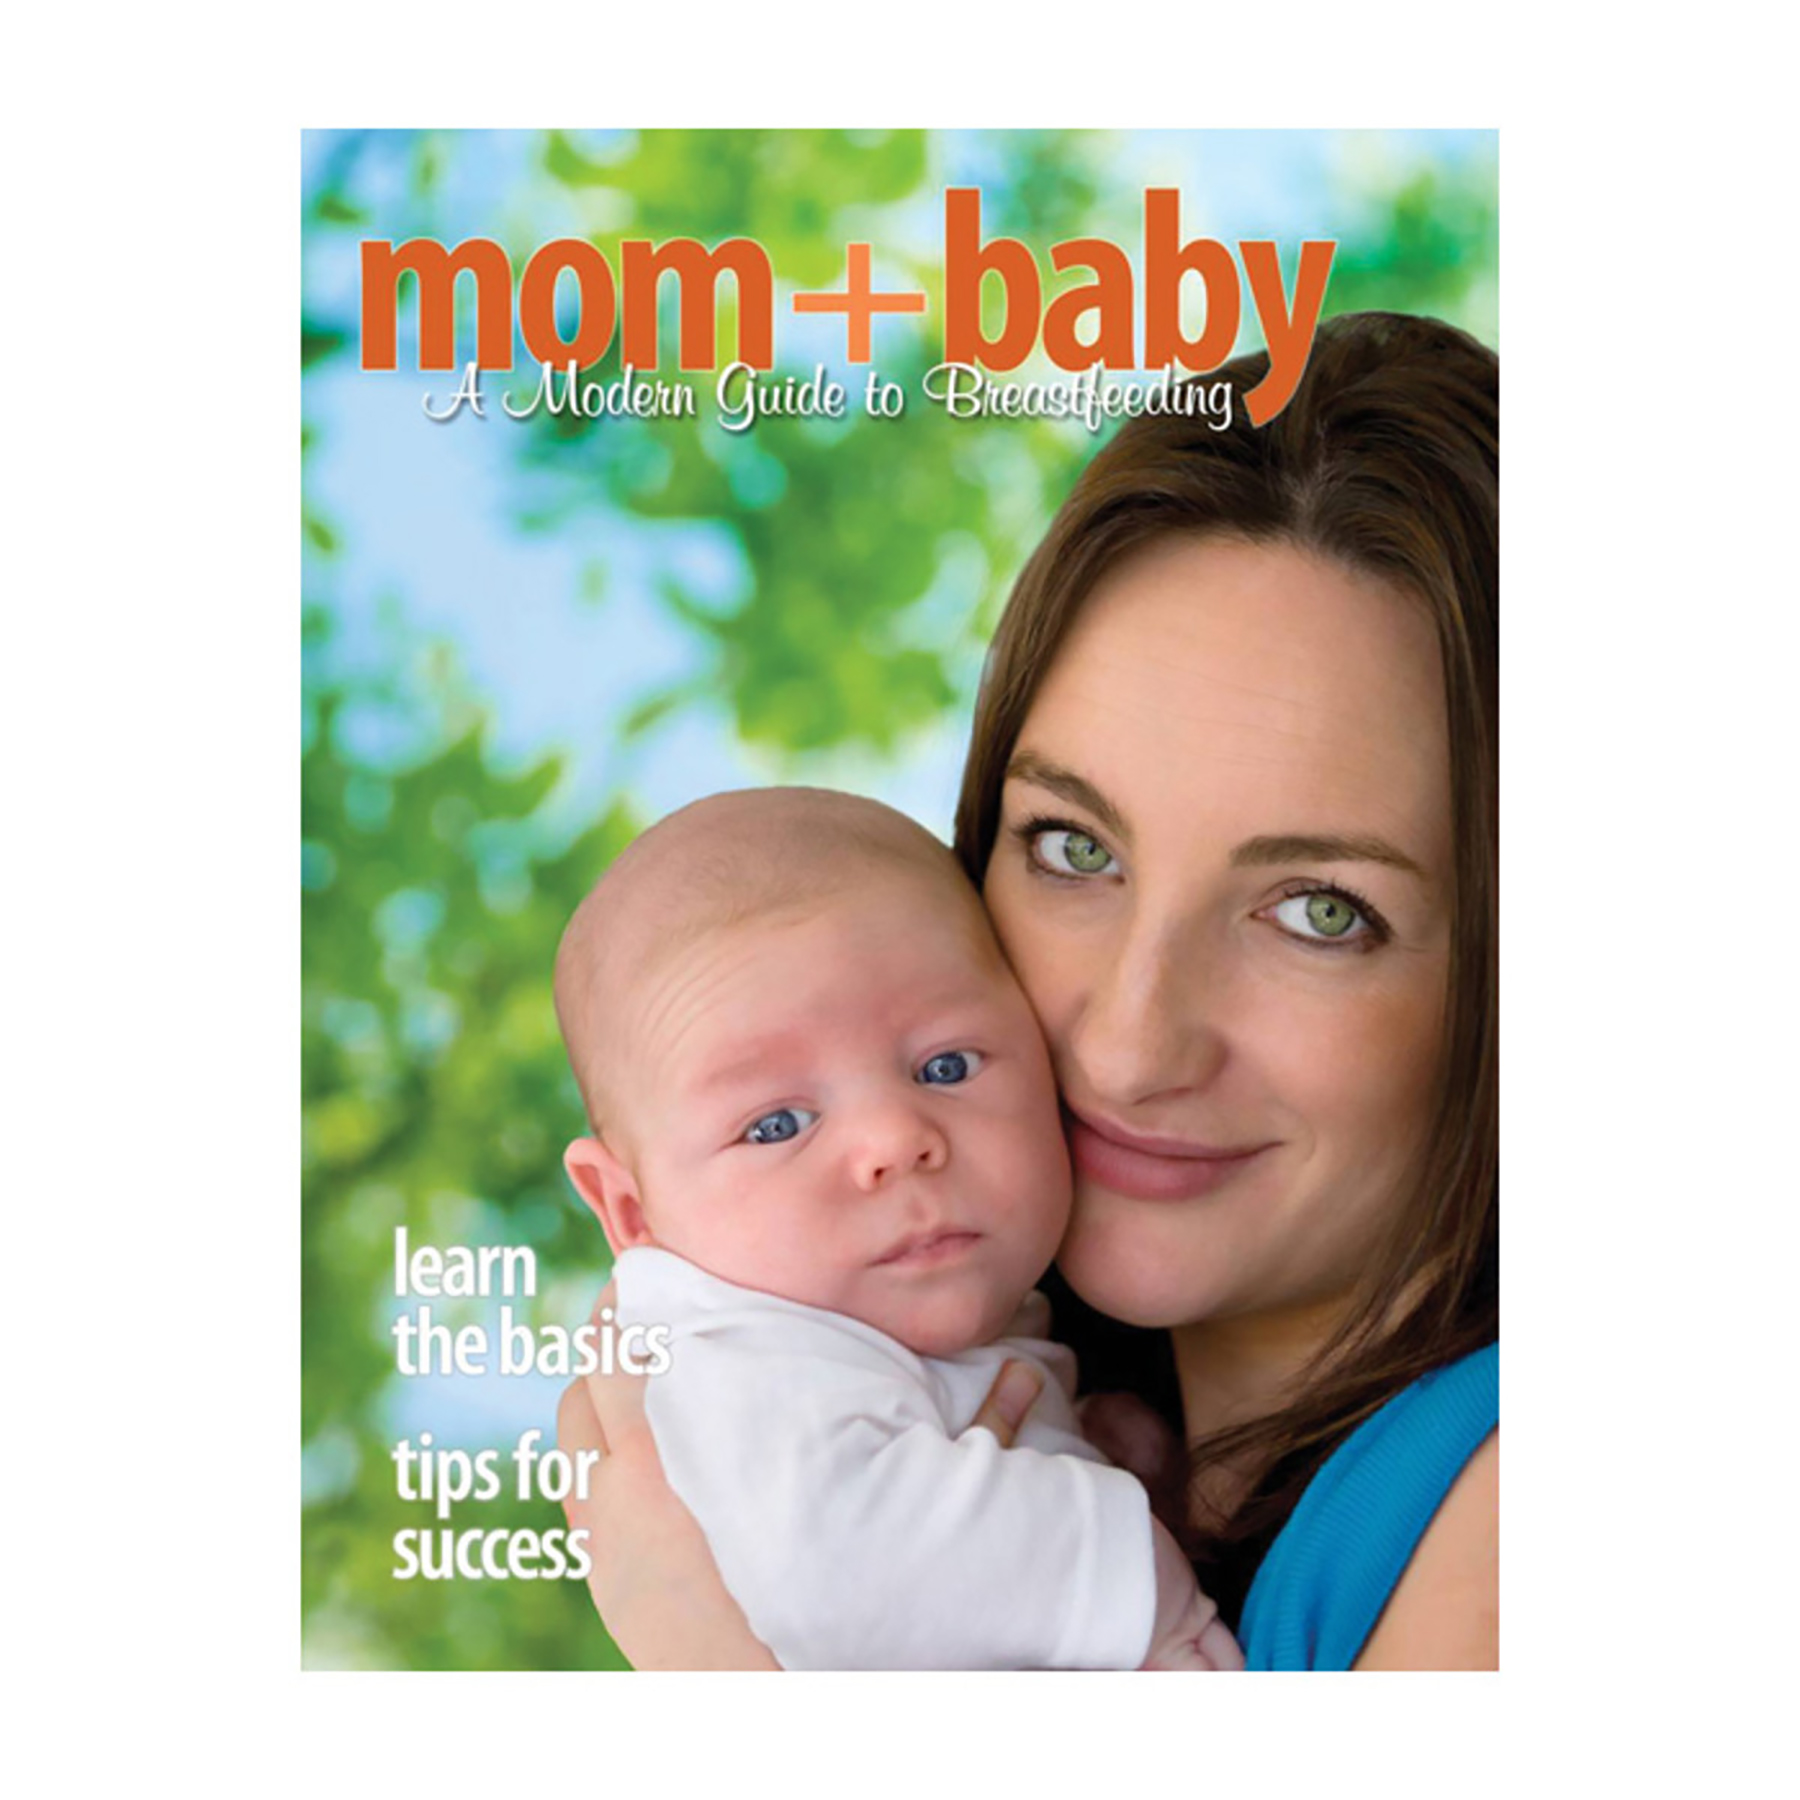 Mom+baby modern guide to breastfeeding book cover closeup of mom holding baby next to face, Childbirth Graphics, 50292